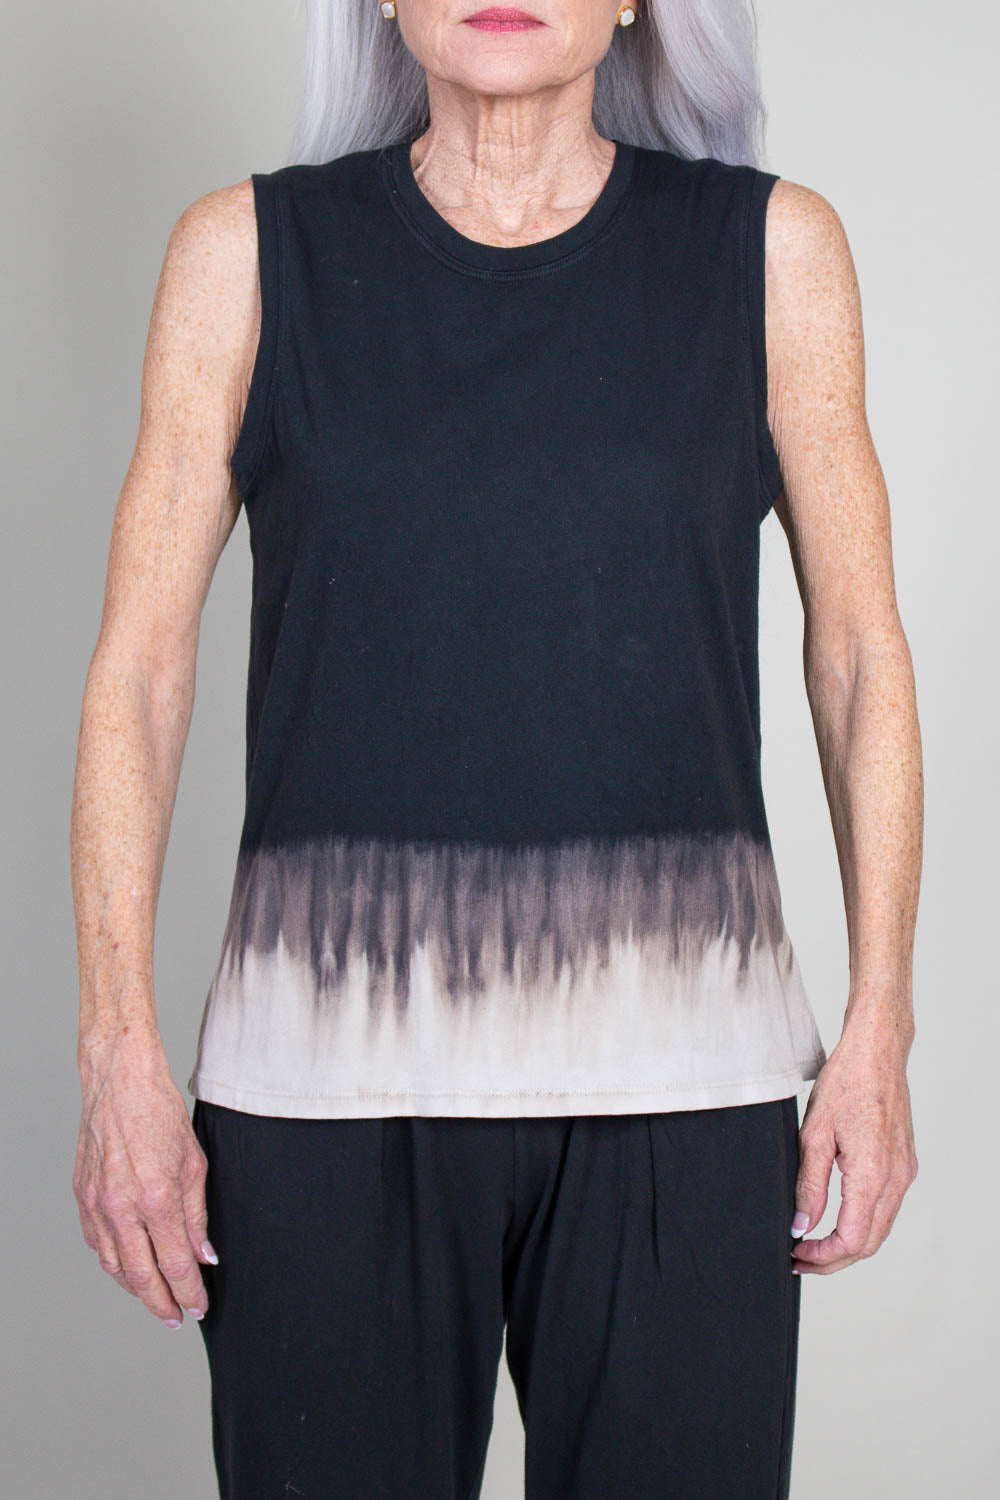 Fitted Muscle in Black Horizon Tie Dye